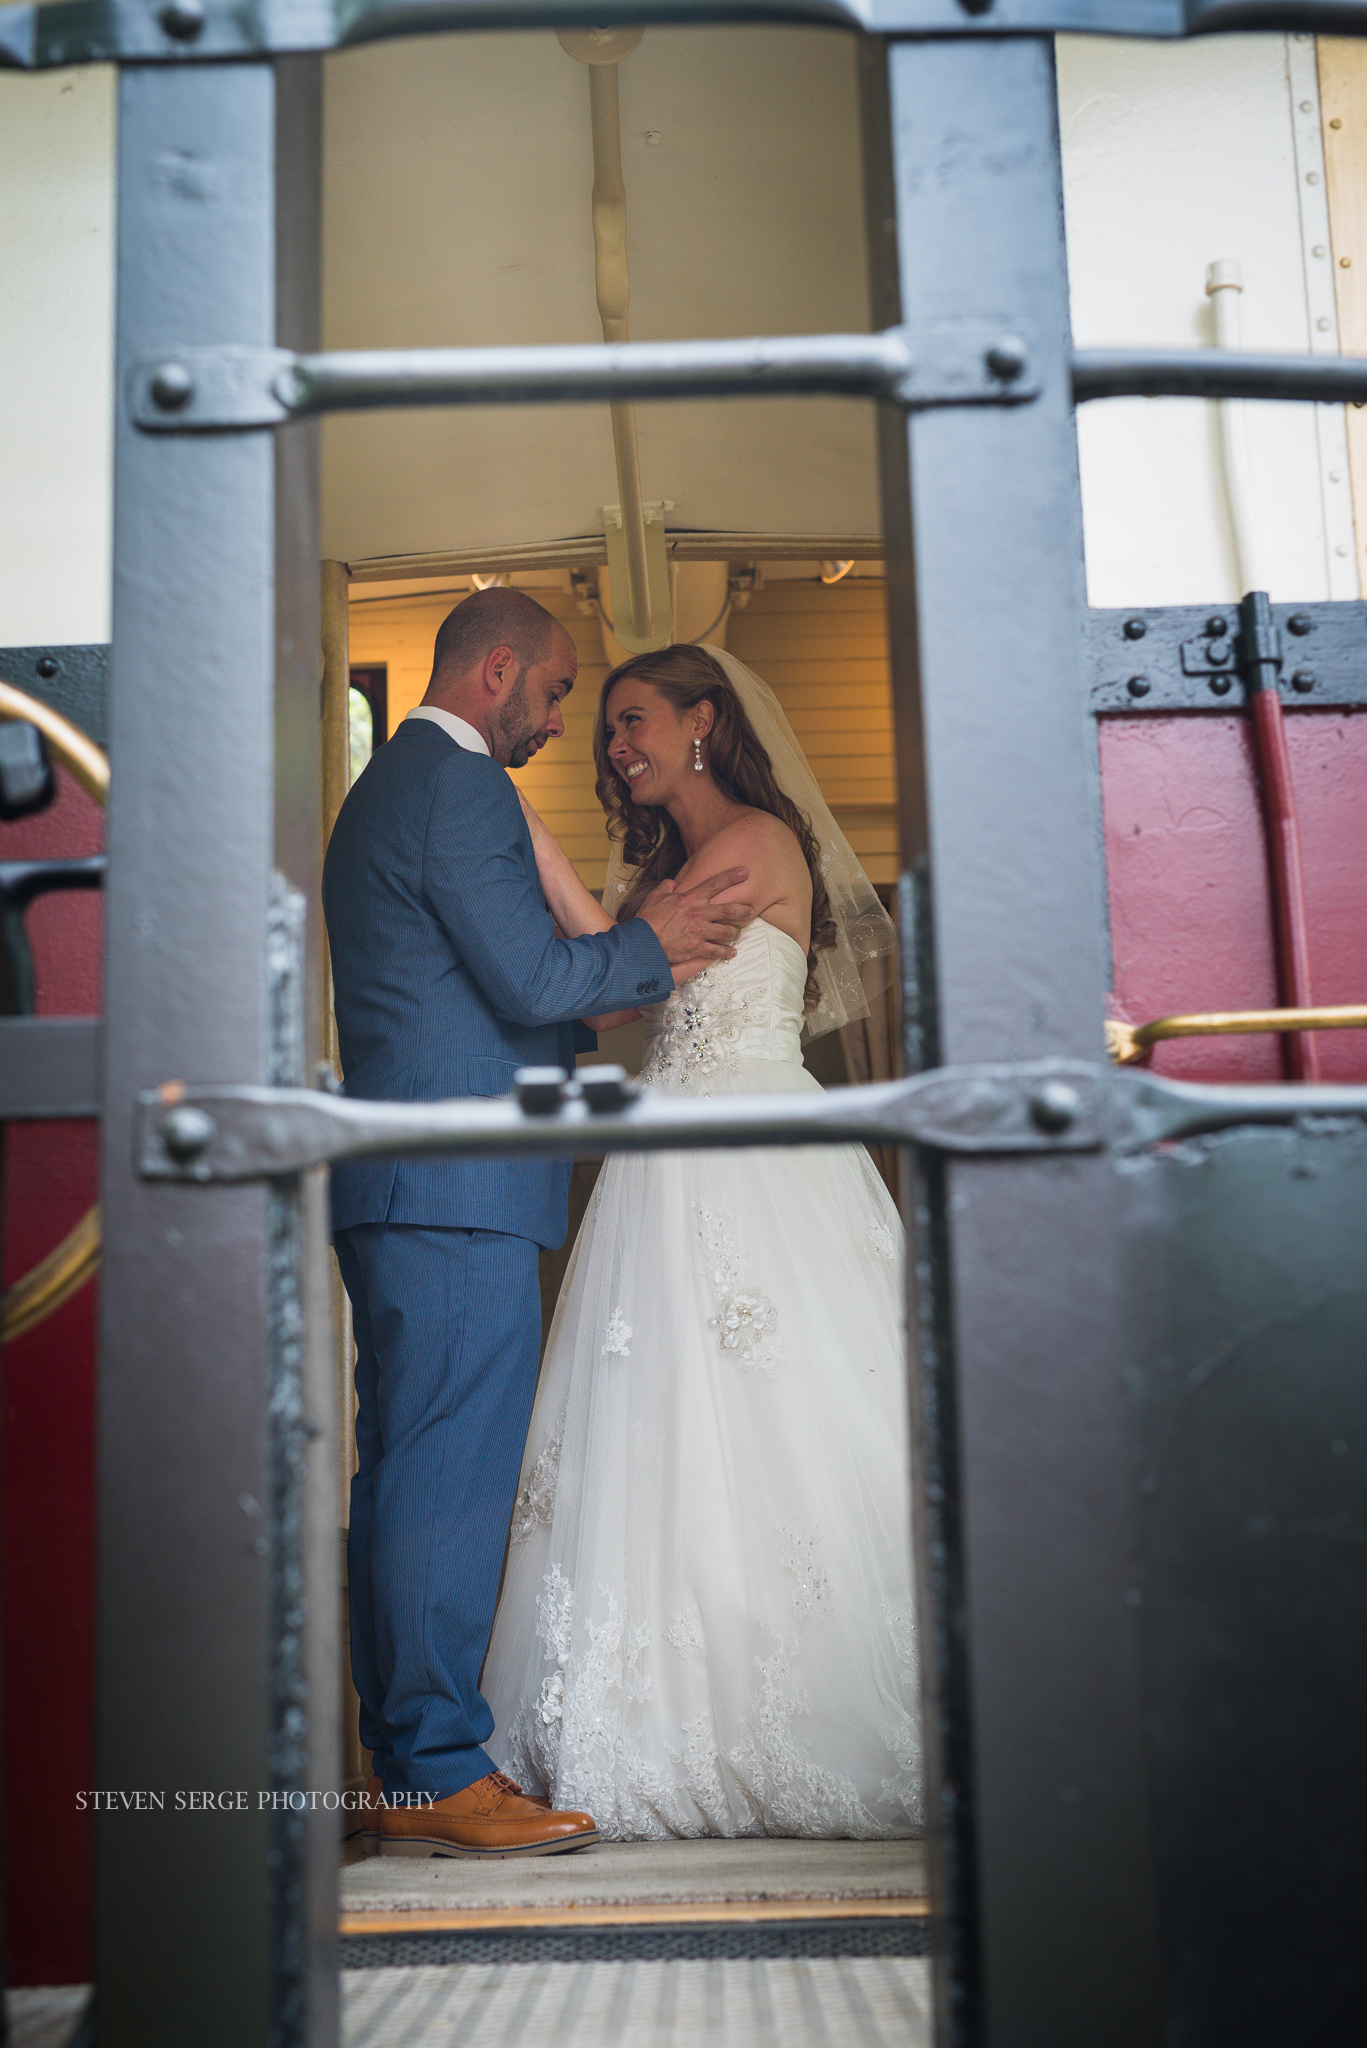 philadelphia-pheonixville-columbia-station-wedding-photographer-serge-steven-8.jpg